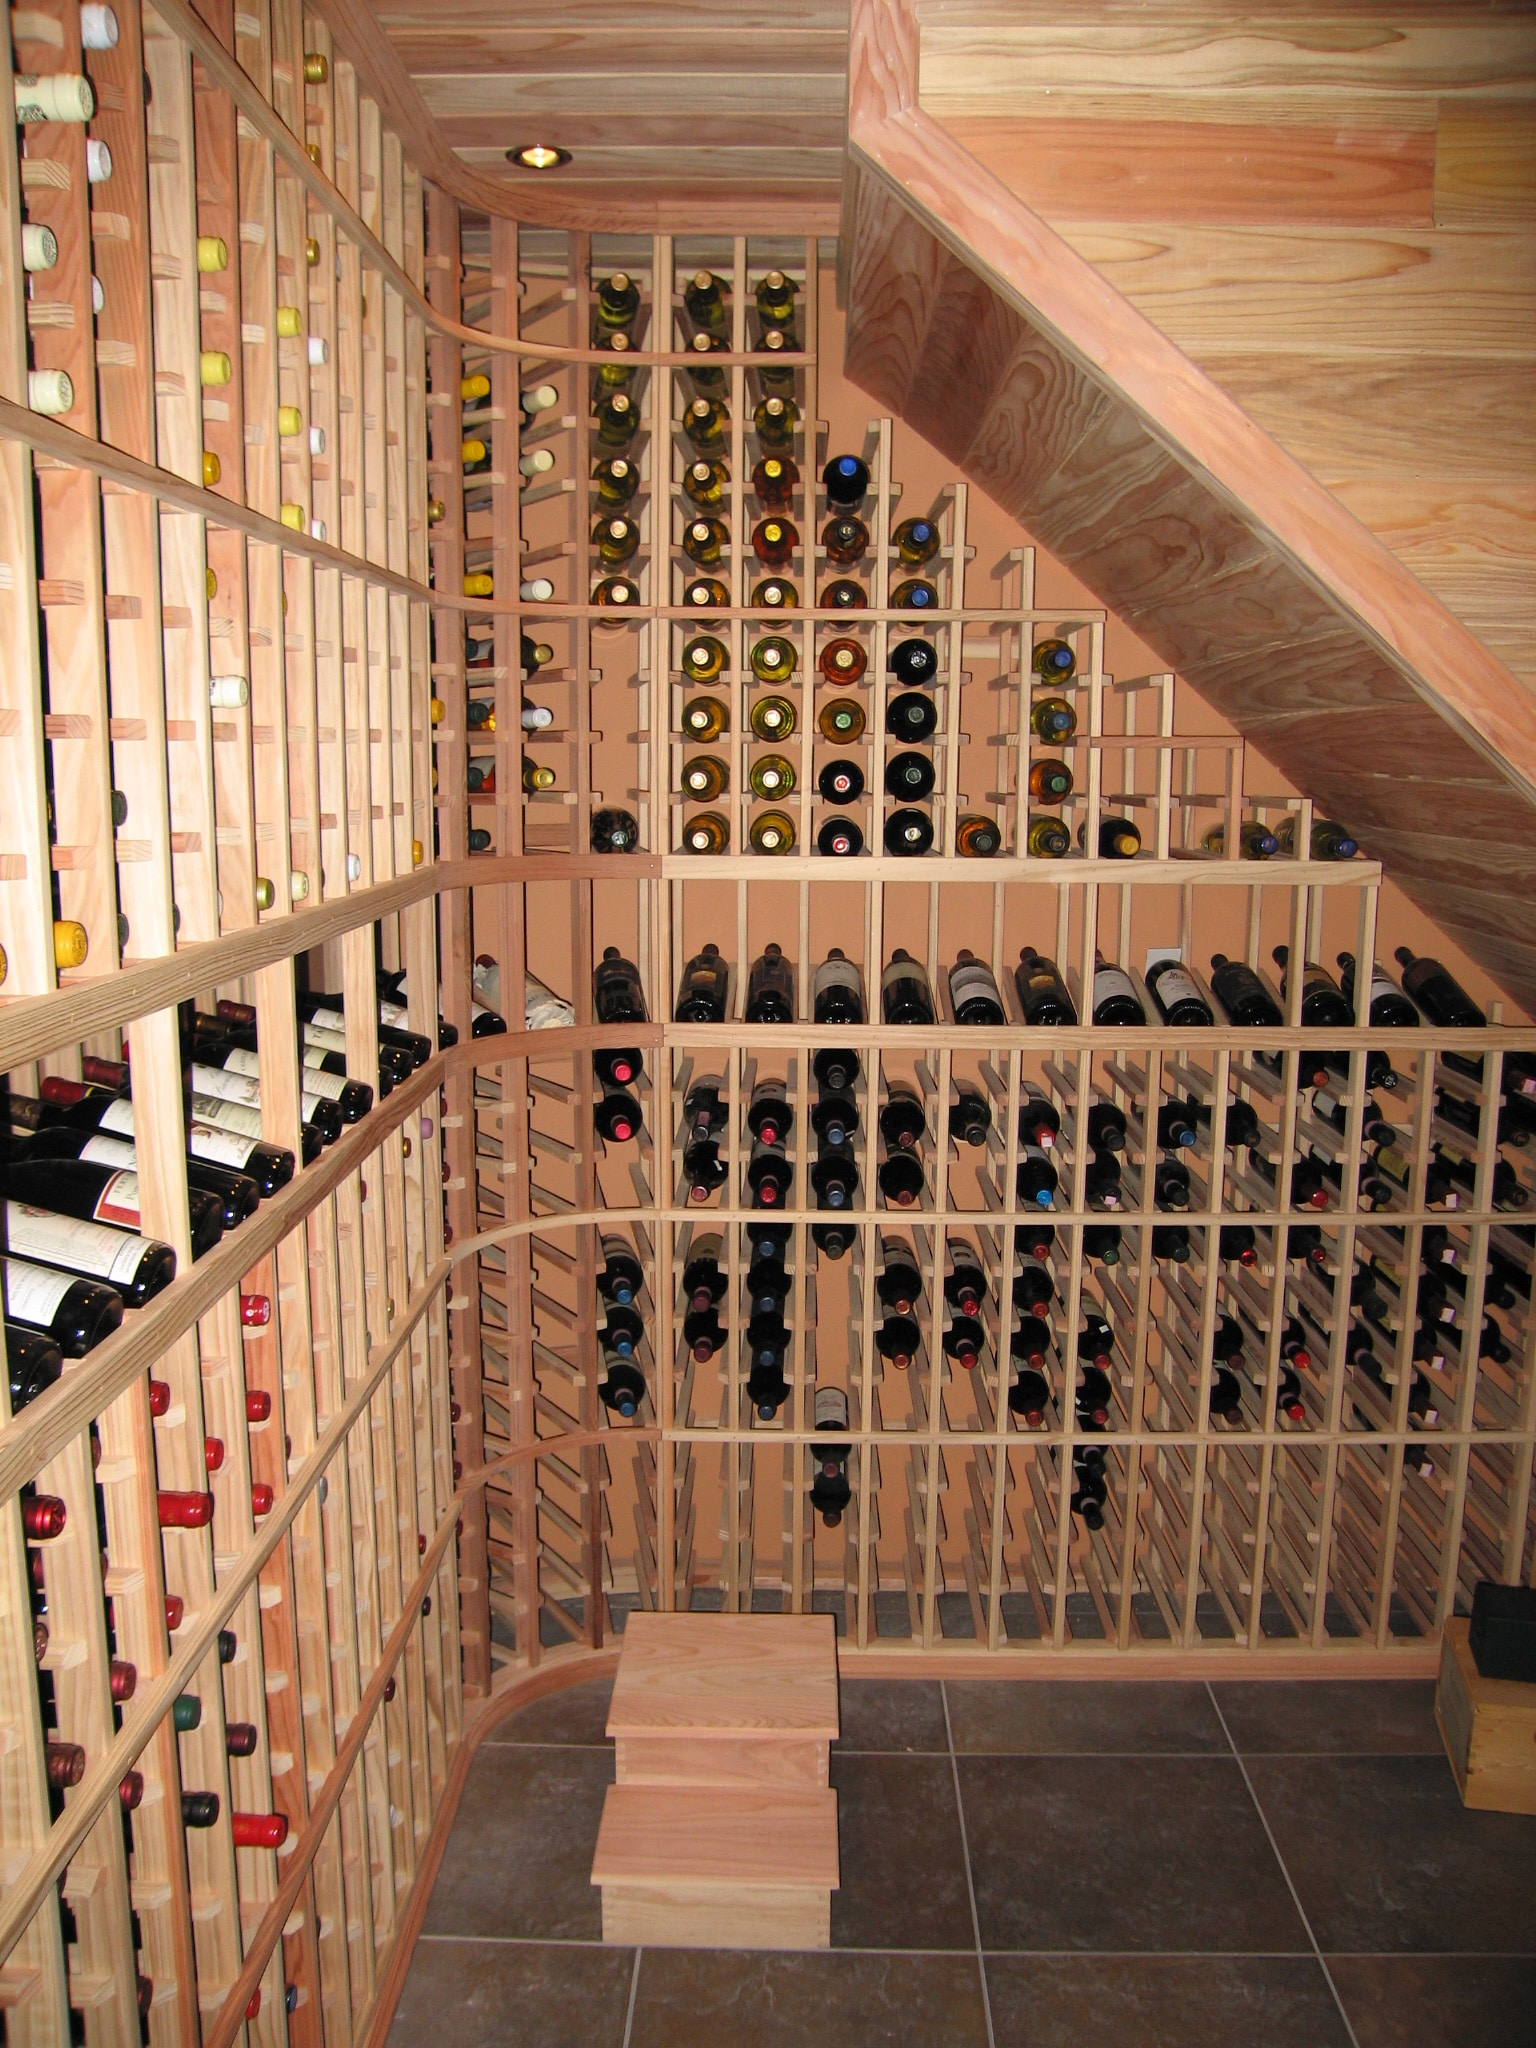 A properly installed wine cellar flooring is necessary to create an effective climate-controlled environment, which is necessary for aging wine. Learn other vital aspects of building a functional custom wine cellar. Click here!